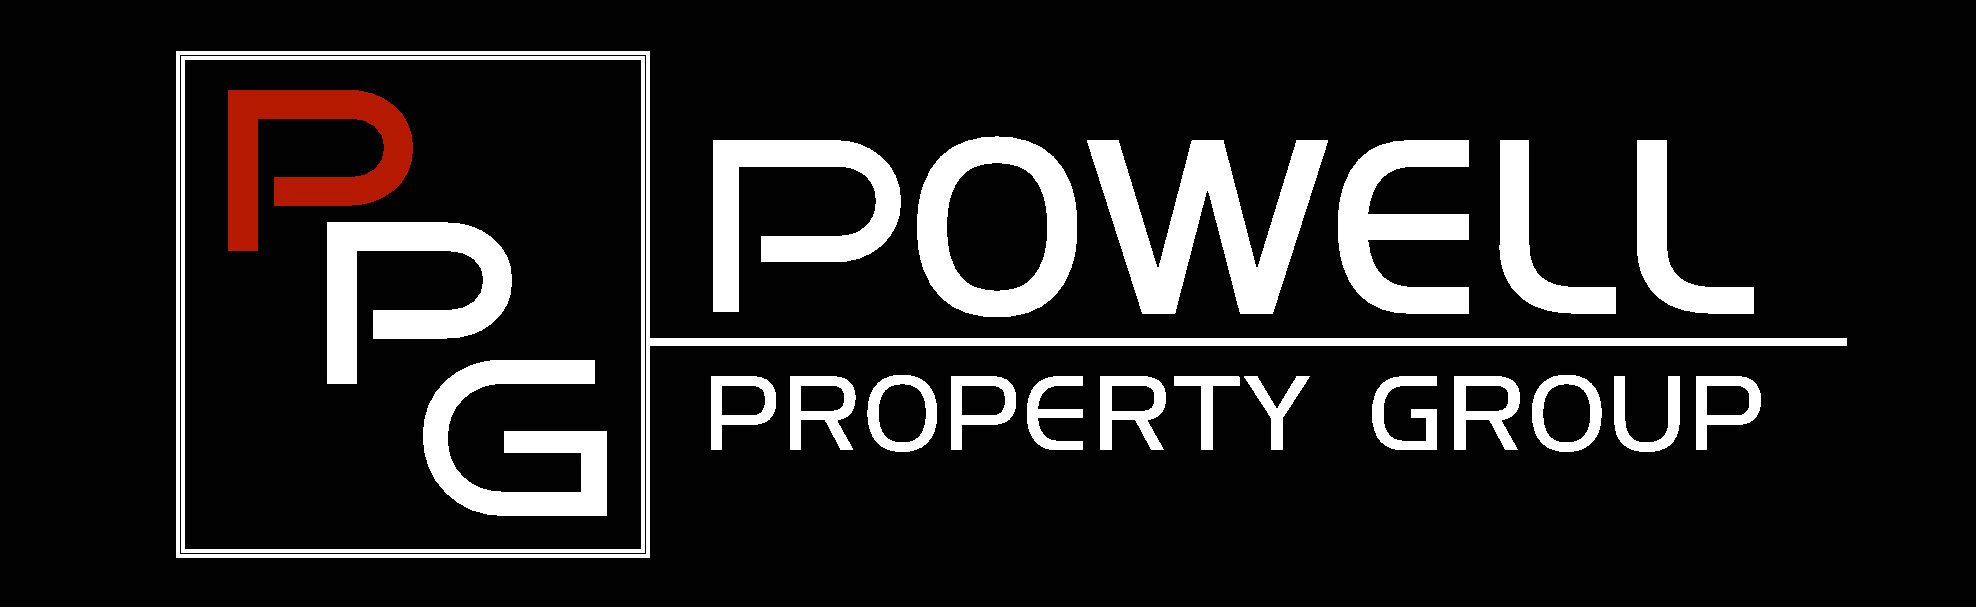 Powell Property Group, Inc.